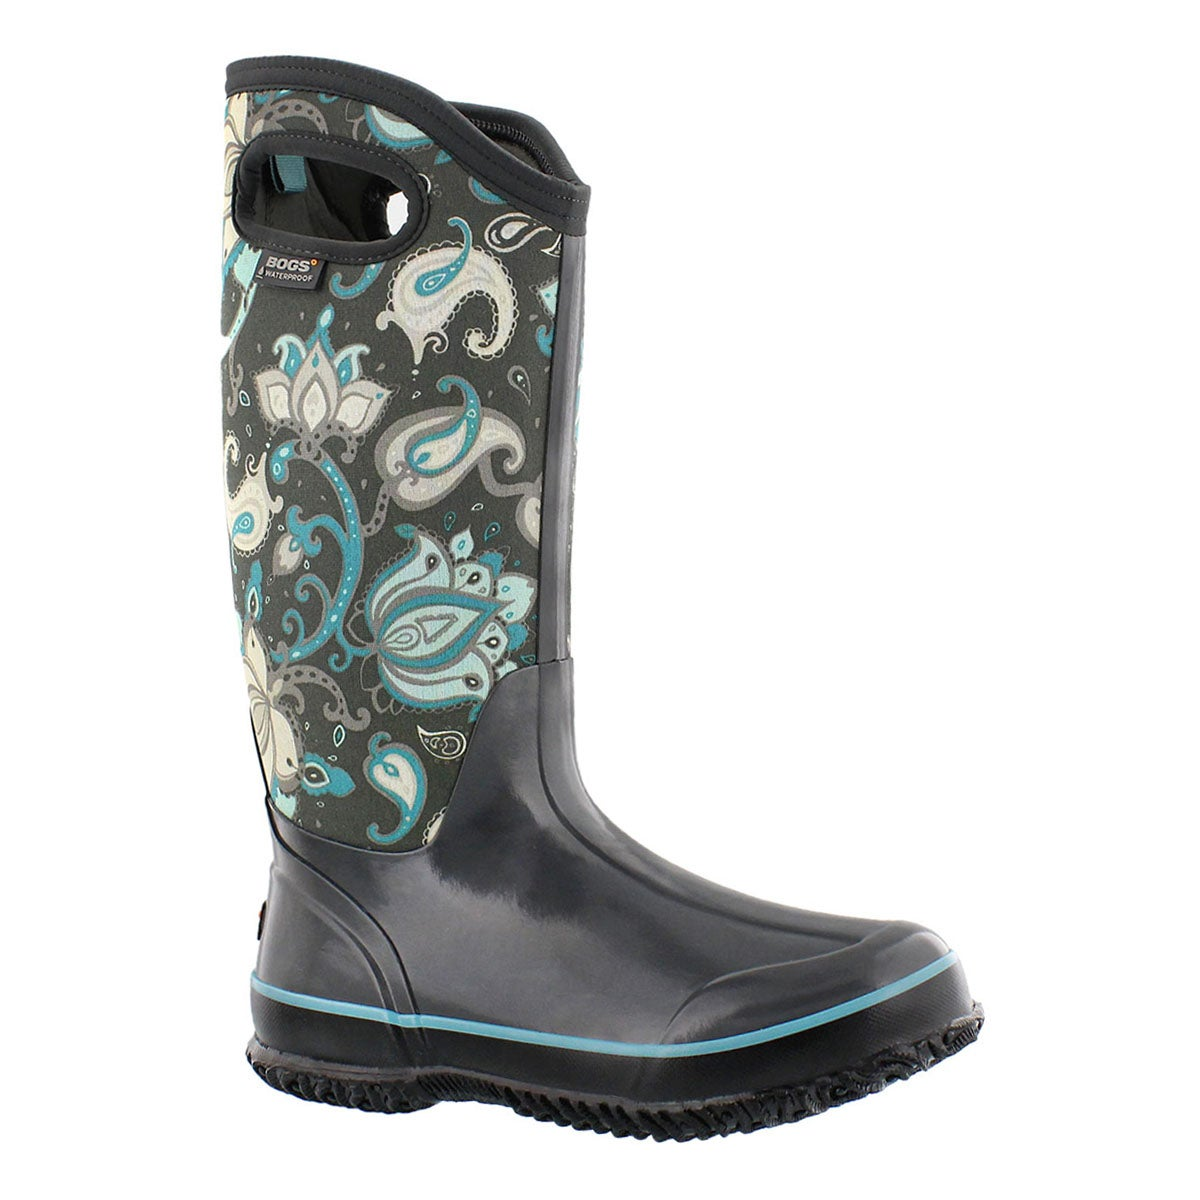 Bottes imperm. CLASSIC PAISLEY FLORAL TALL, femmes